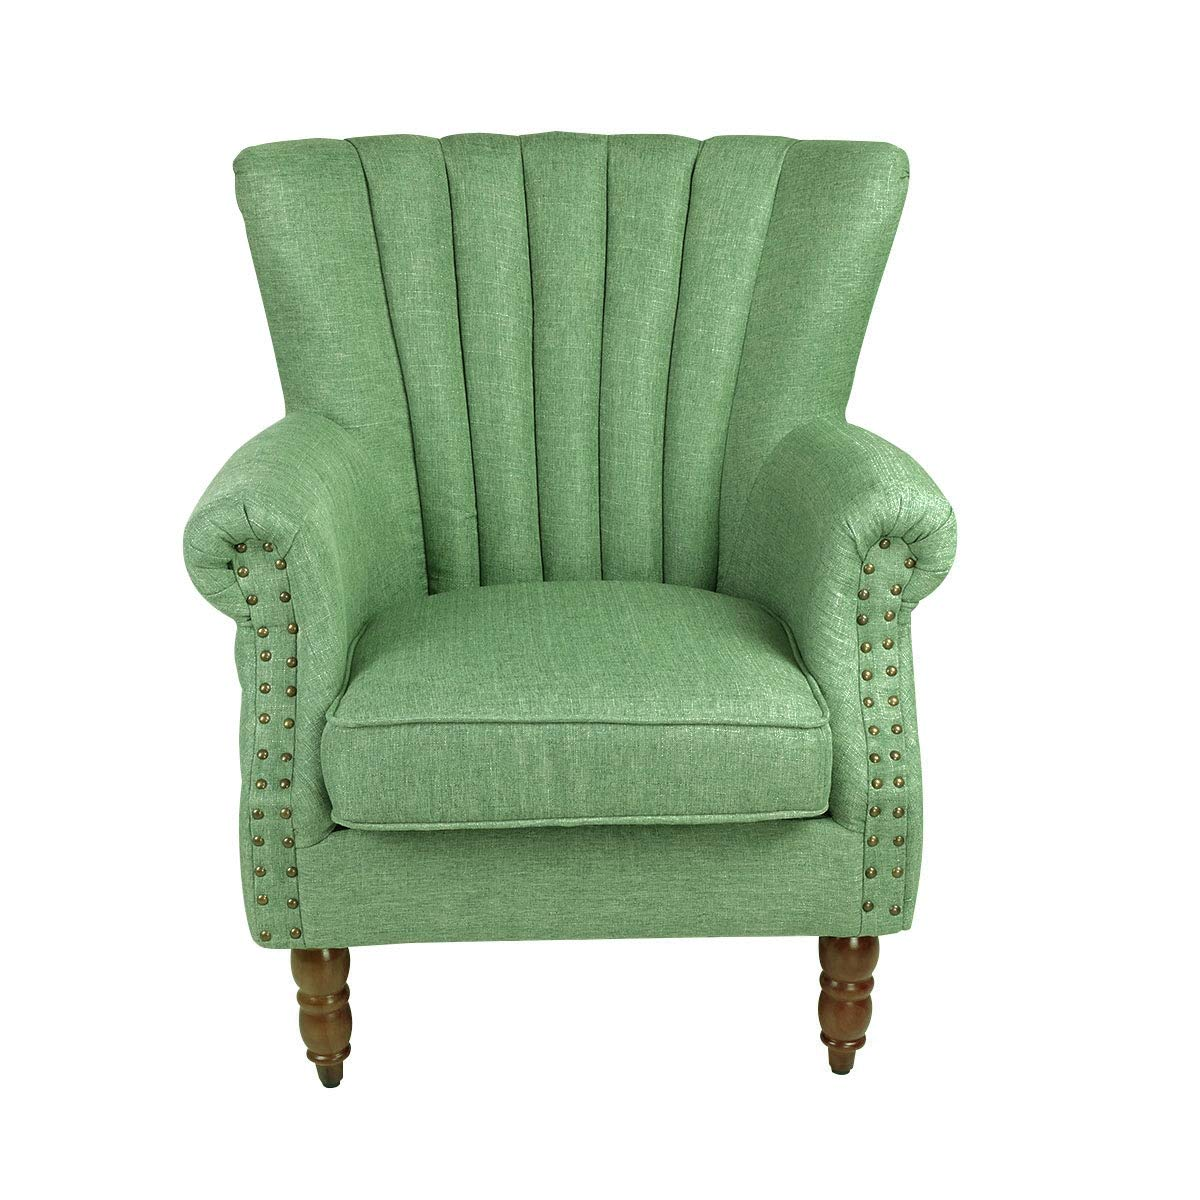 Magshion Elegant Design Fabric Tufted Club Accent Chairs, Green